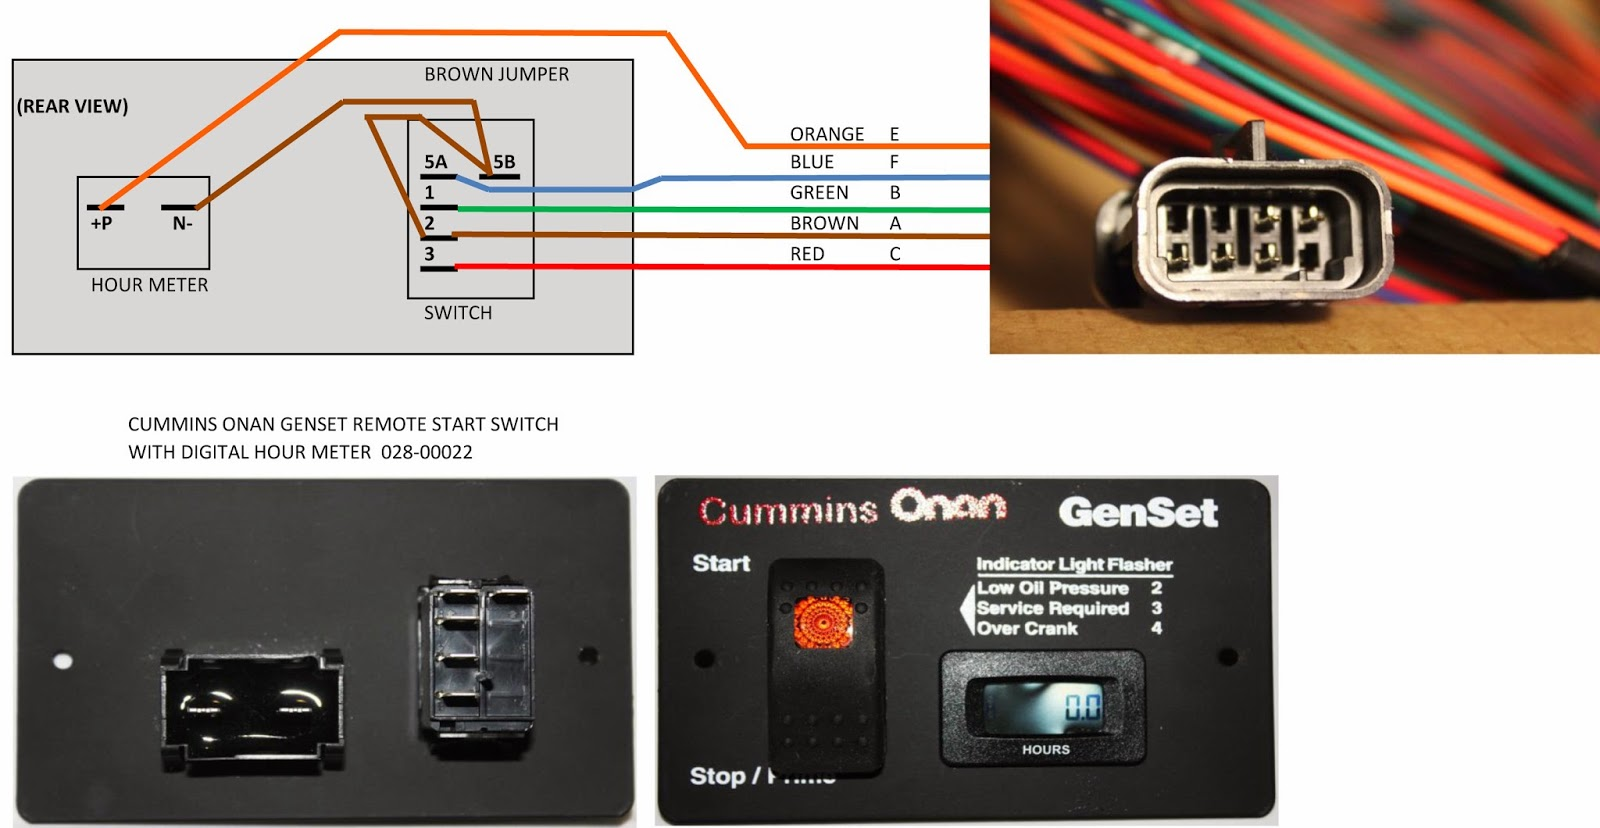 ONAN+REMOTE+SWITCH+WIRING?resize=665%2C344 onan marquis 4000 generator wiring diagram the best wiring onan 2800 microlite generator wiring diagram at gsmx.co